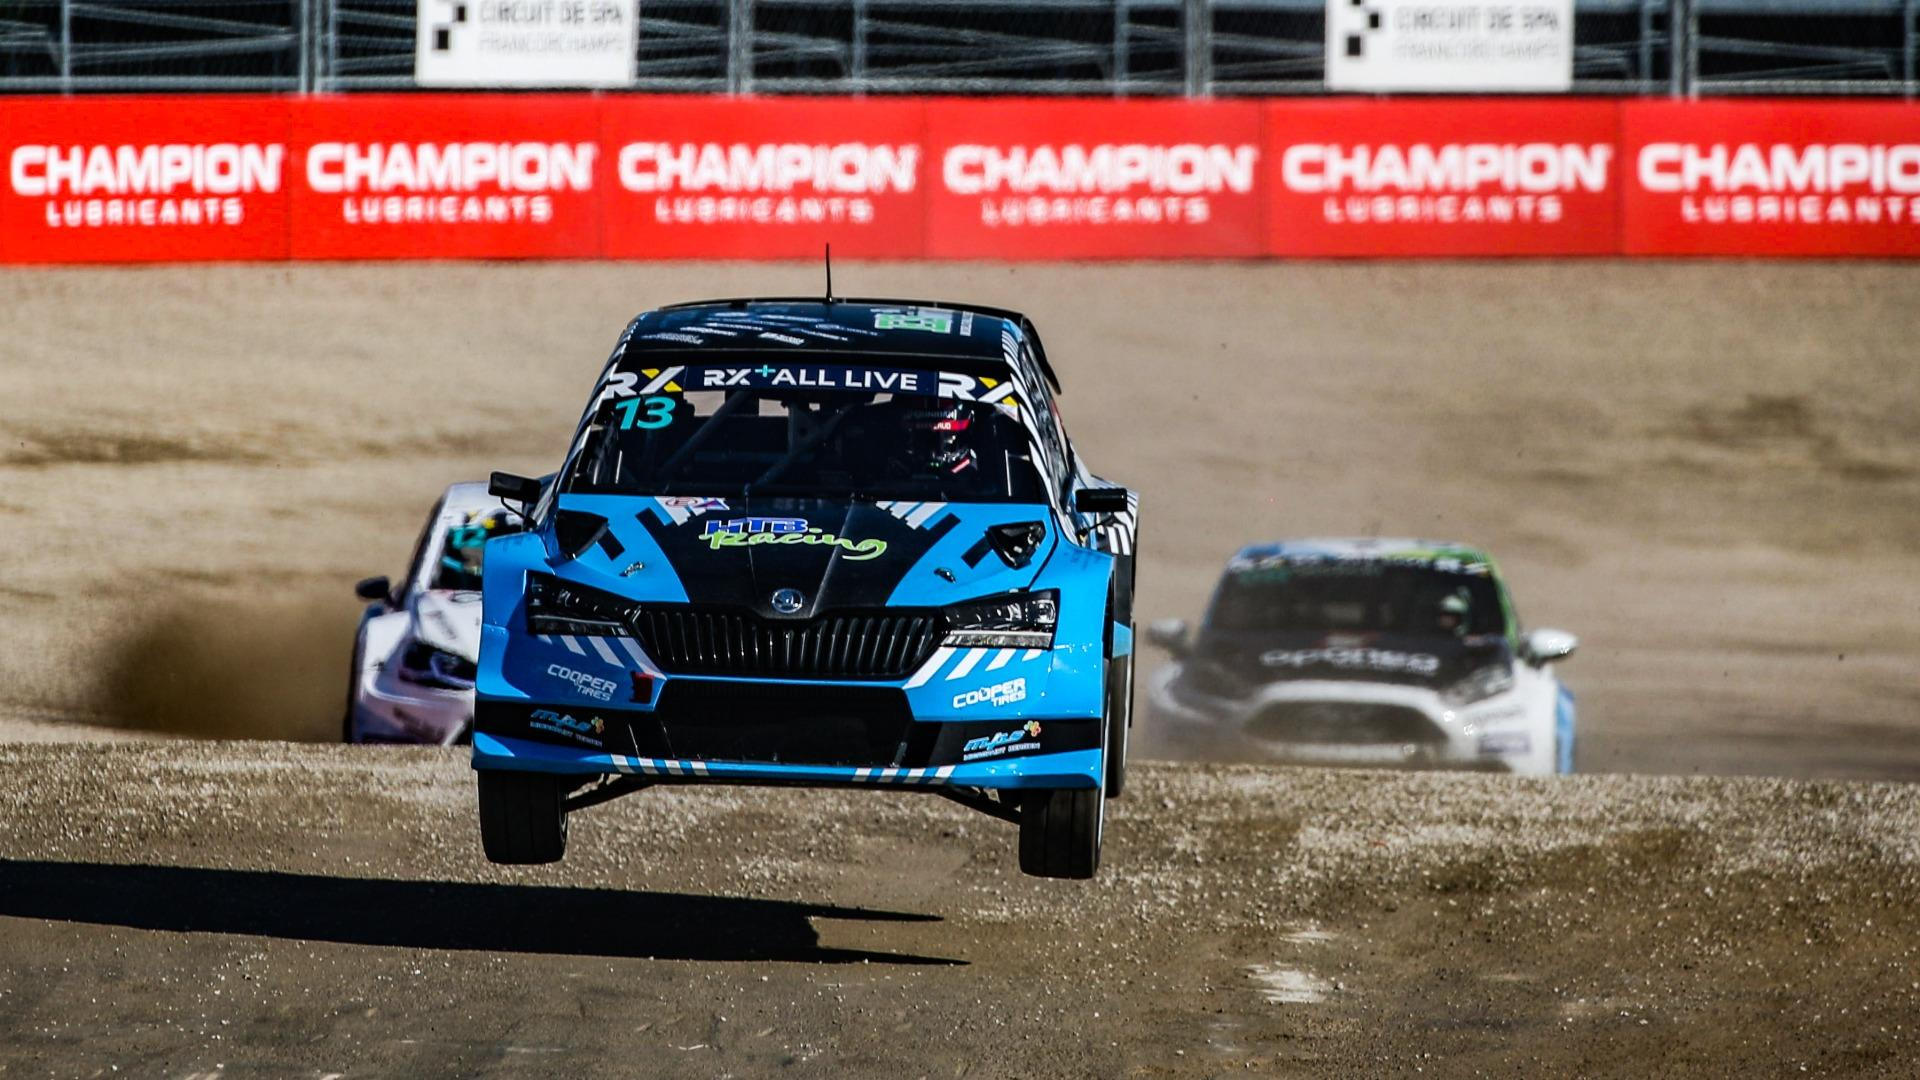 EURO RX1 FULL FINAL: Benelux World RX of Spa-Francorchamps 2021